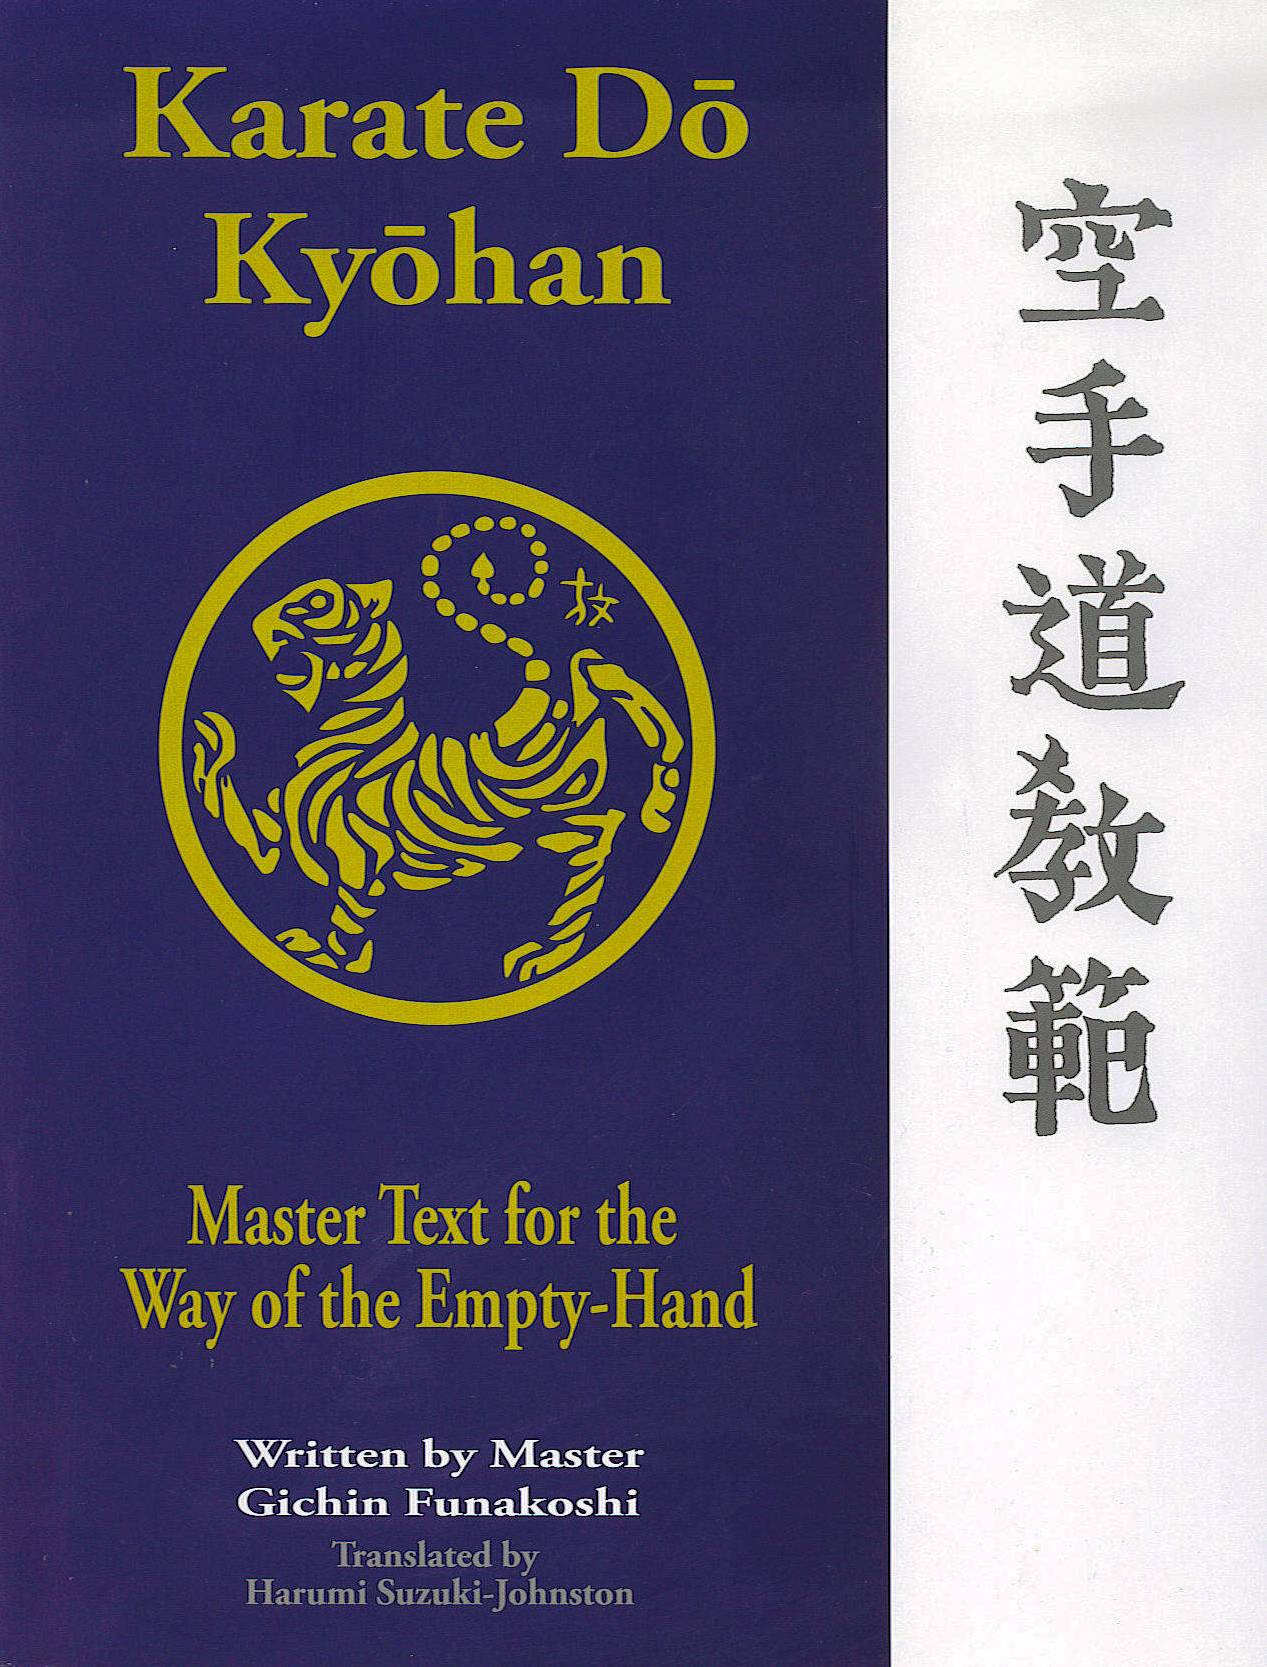 Karate-do Kyohan: Master Text for the Wayof the Empty-Hand